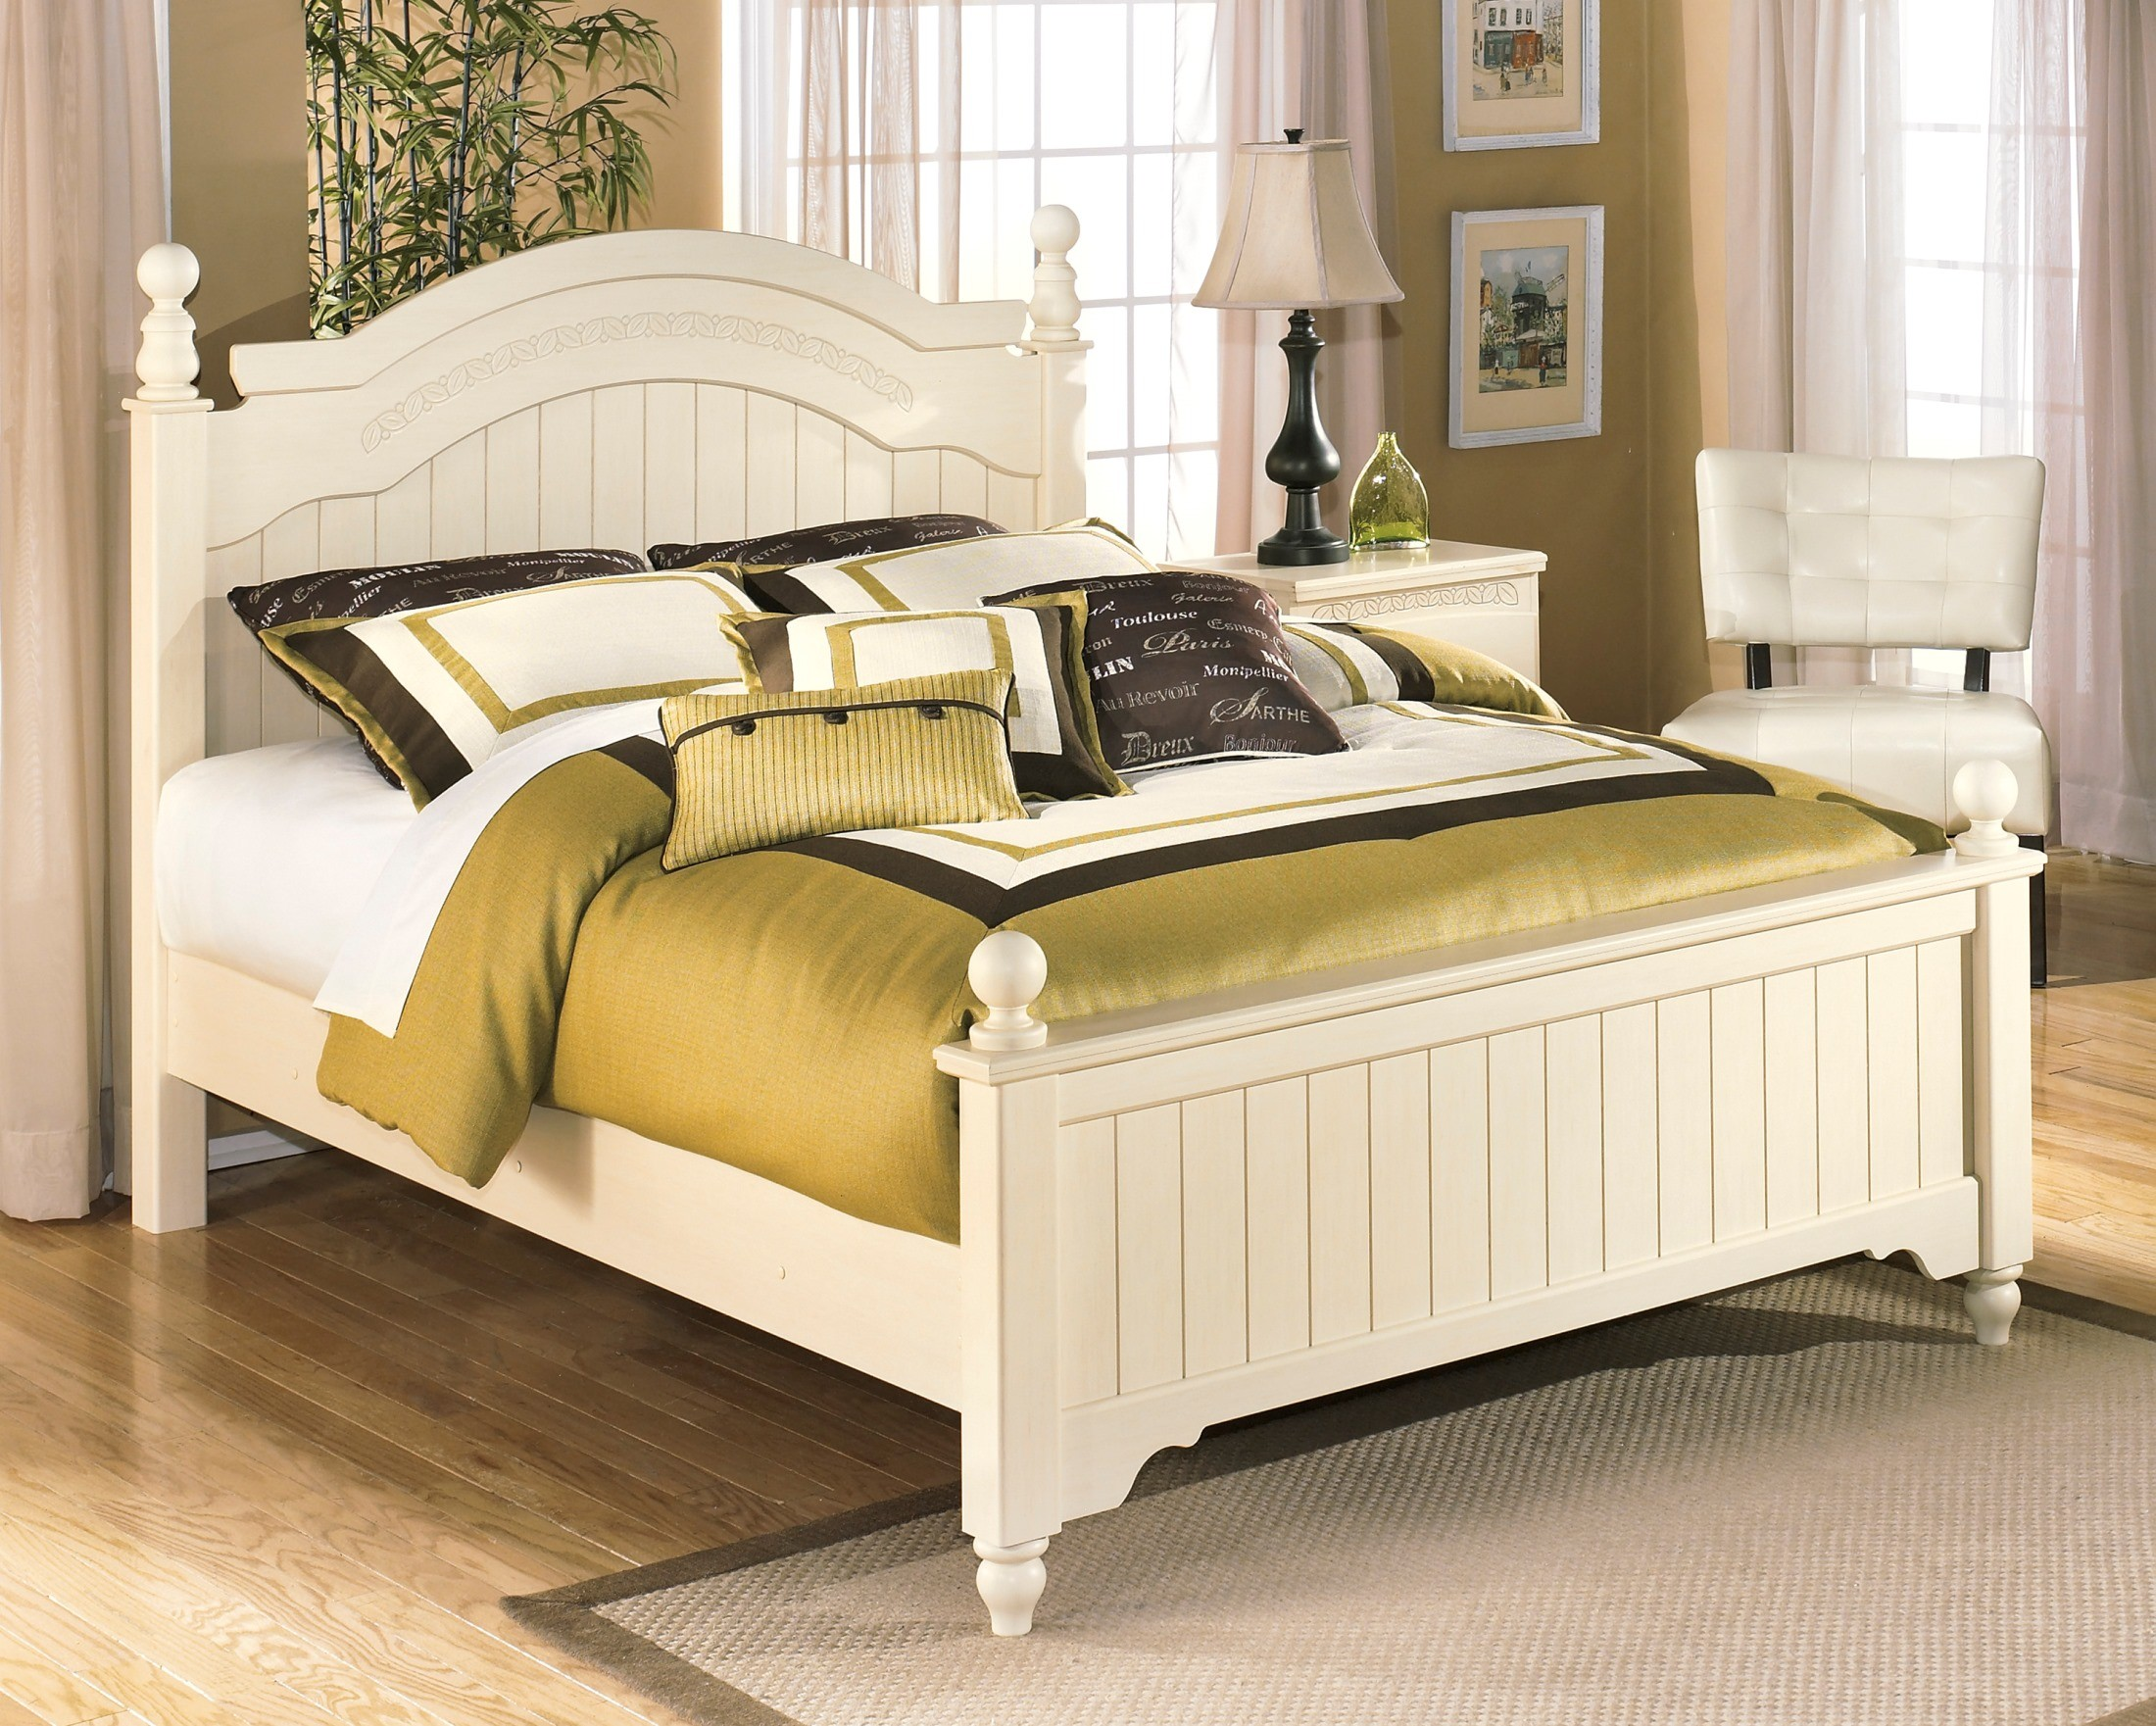 cottage retreat queen poster bed from ashley b213 57n 54n